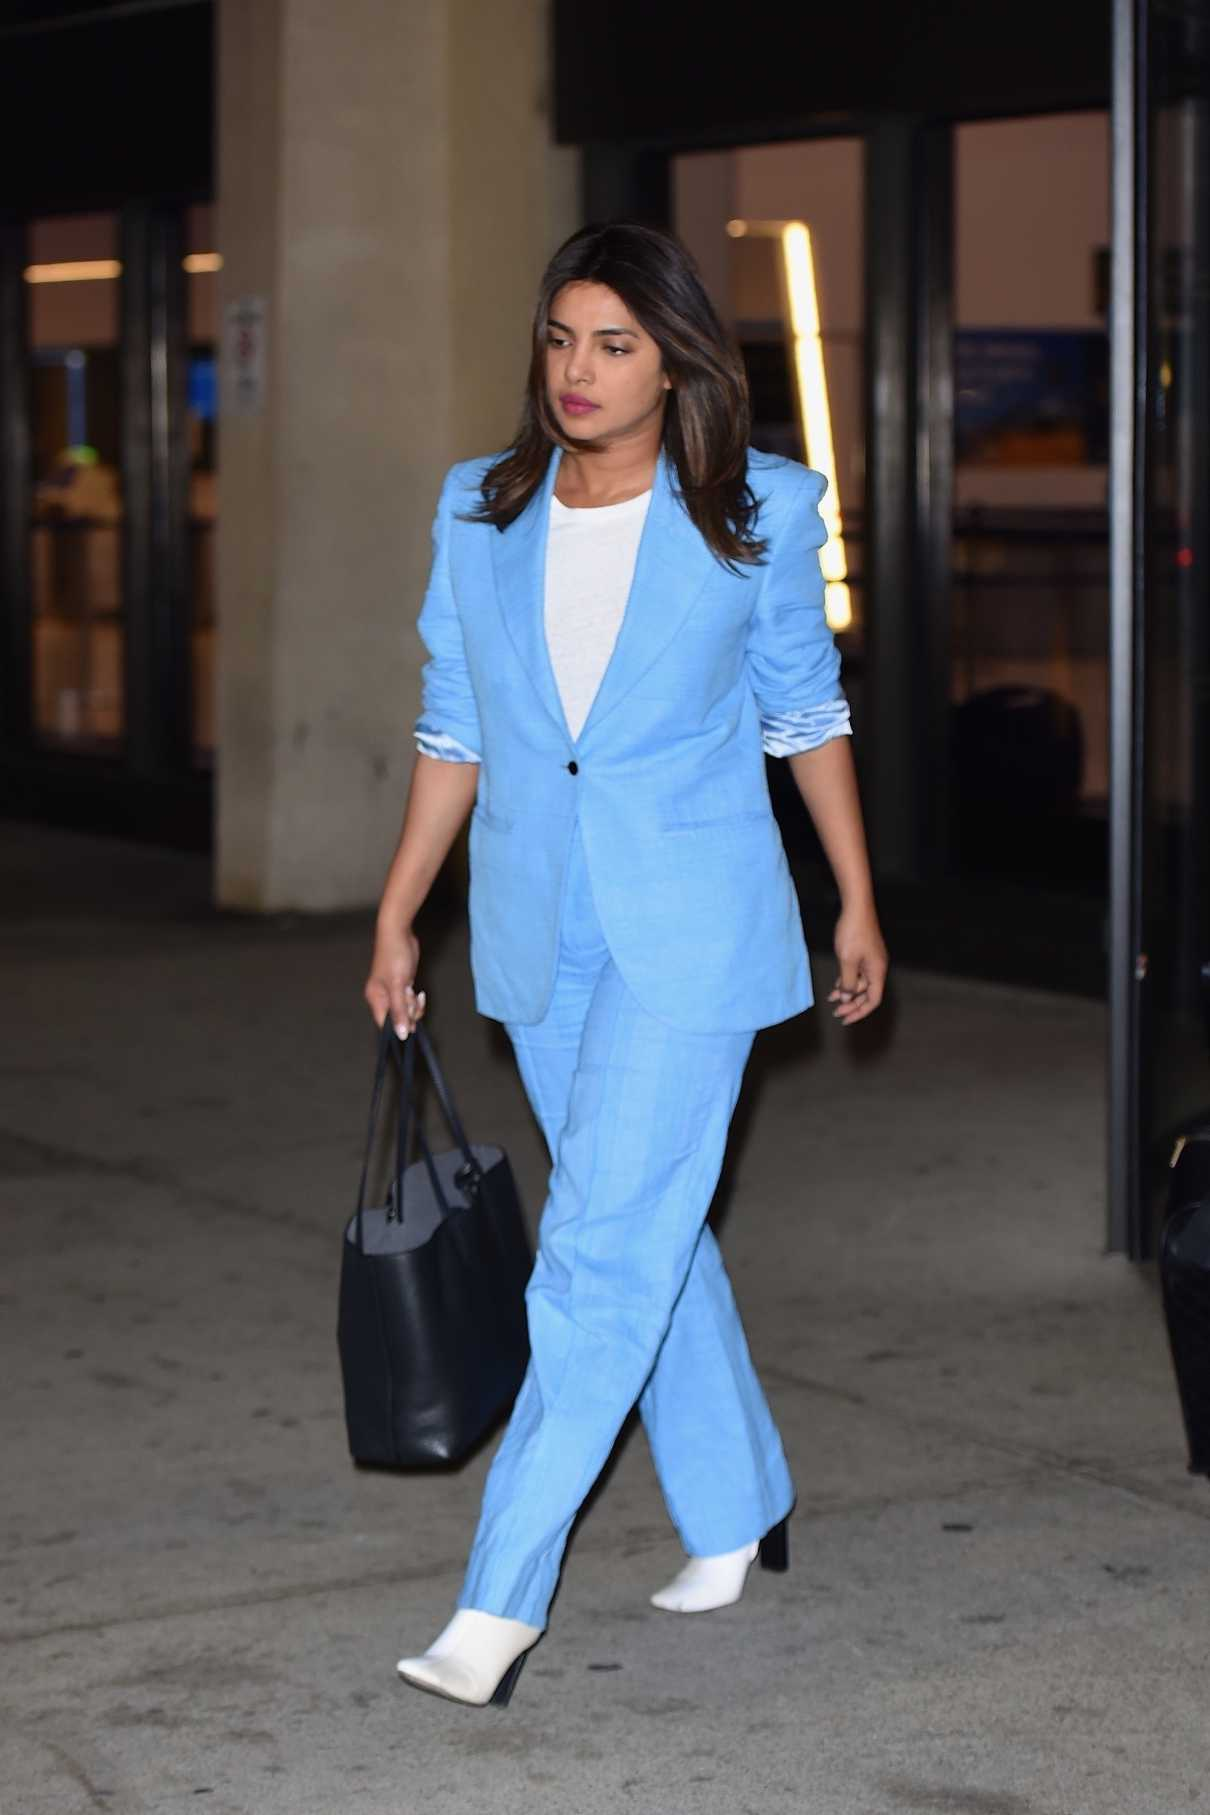 Priyanka Chopra in a Blue Suit